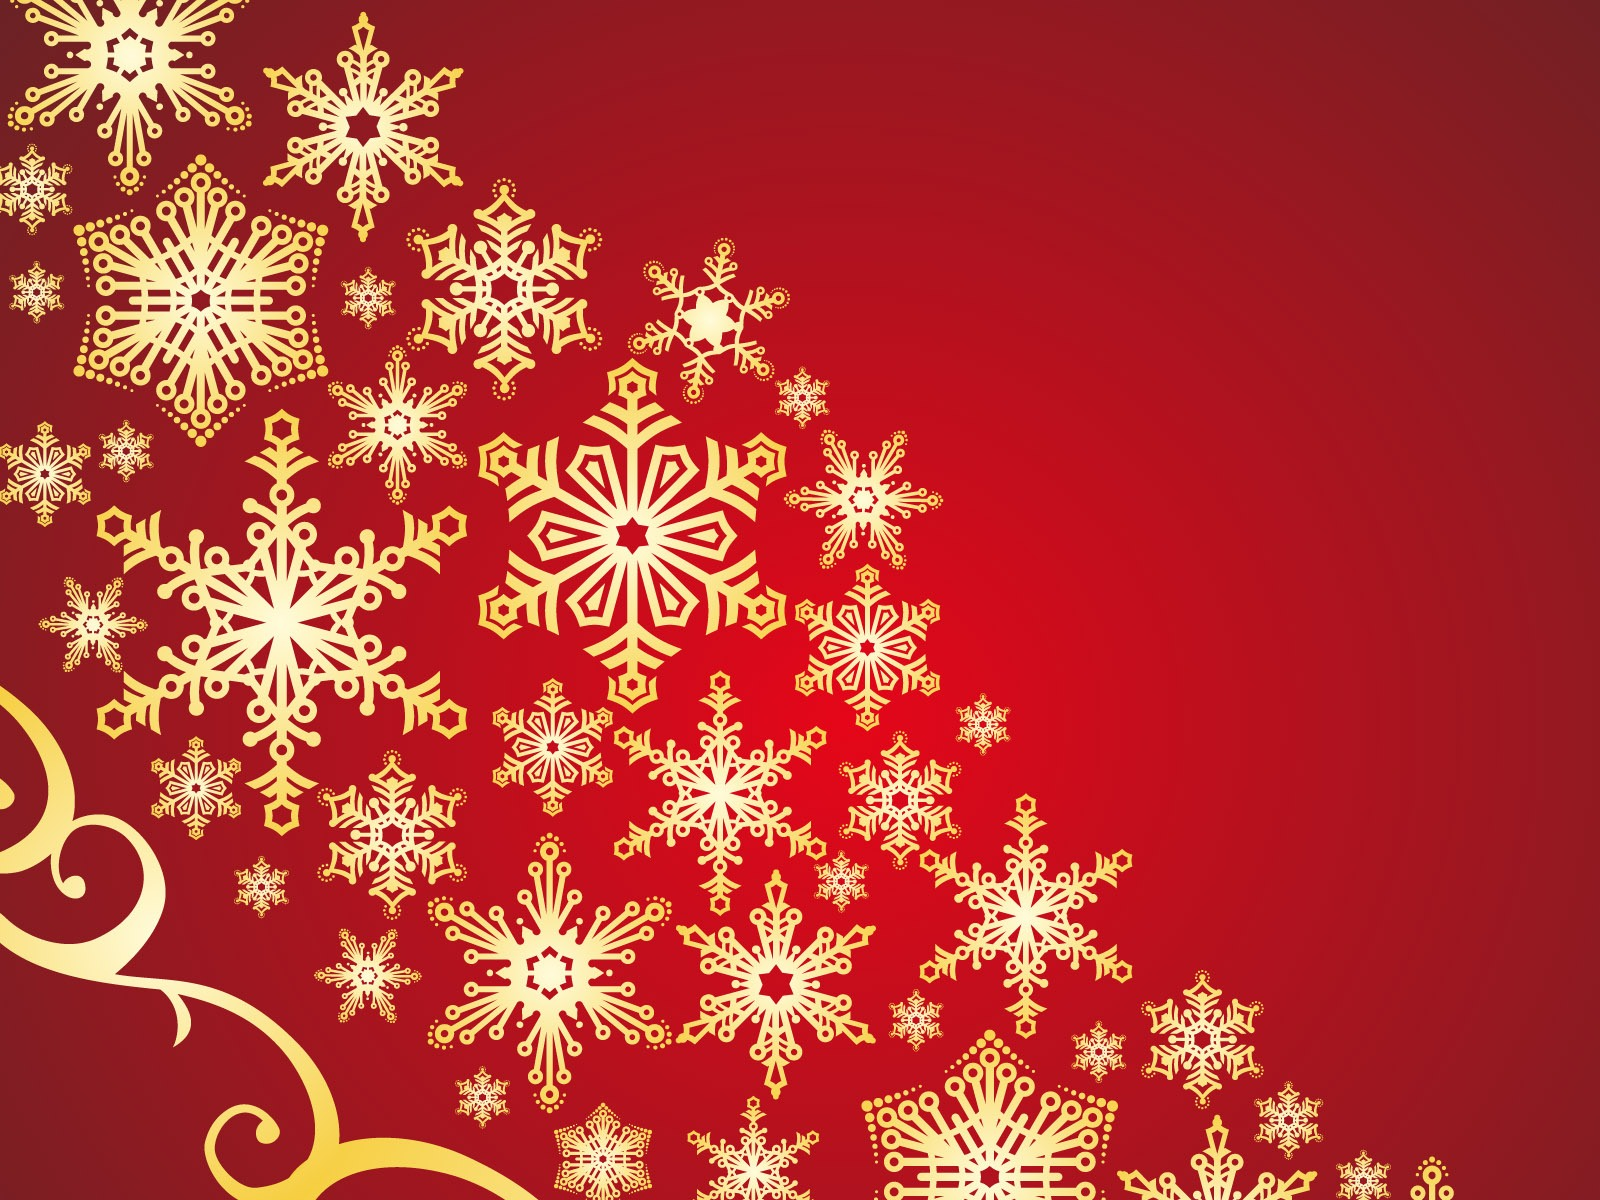 desktop backgrounds holiday #6